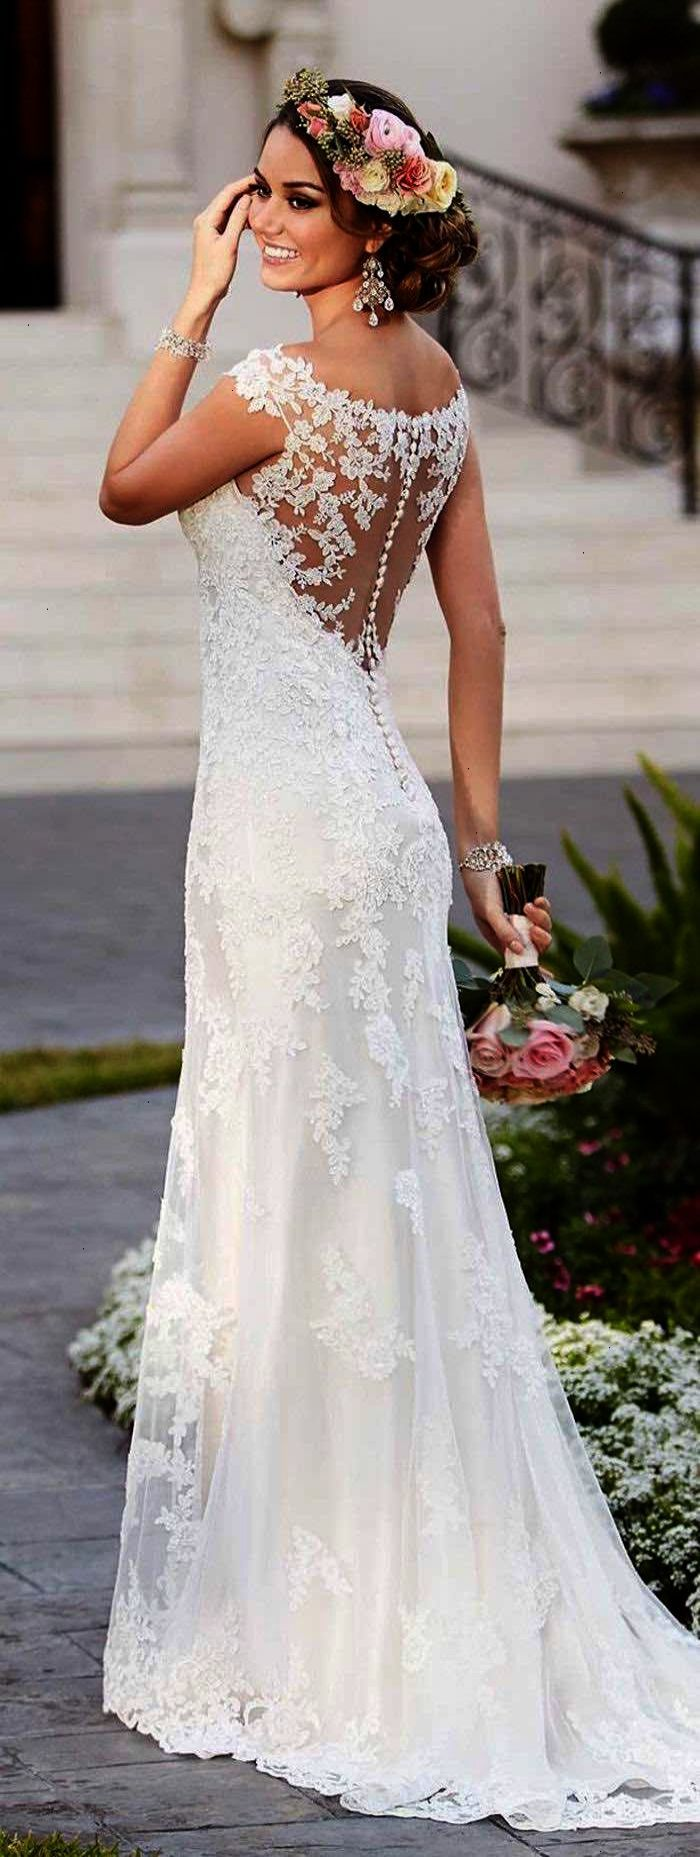 Gorgeous Stella York Lace Wedding Dress Looks Amazing For This Summer Floral Crown Weddingdress Wedding Dresses Popular Wedding Dresses Wedding Dresses Lace [ 1857 x 700 Pixel ]